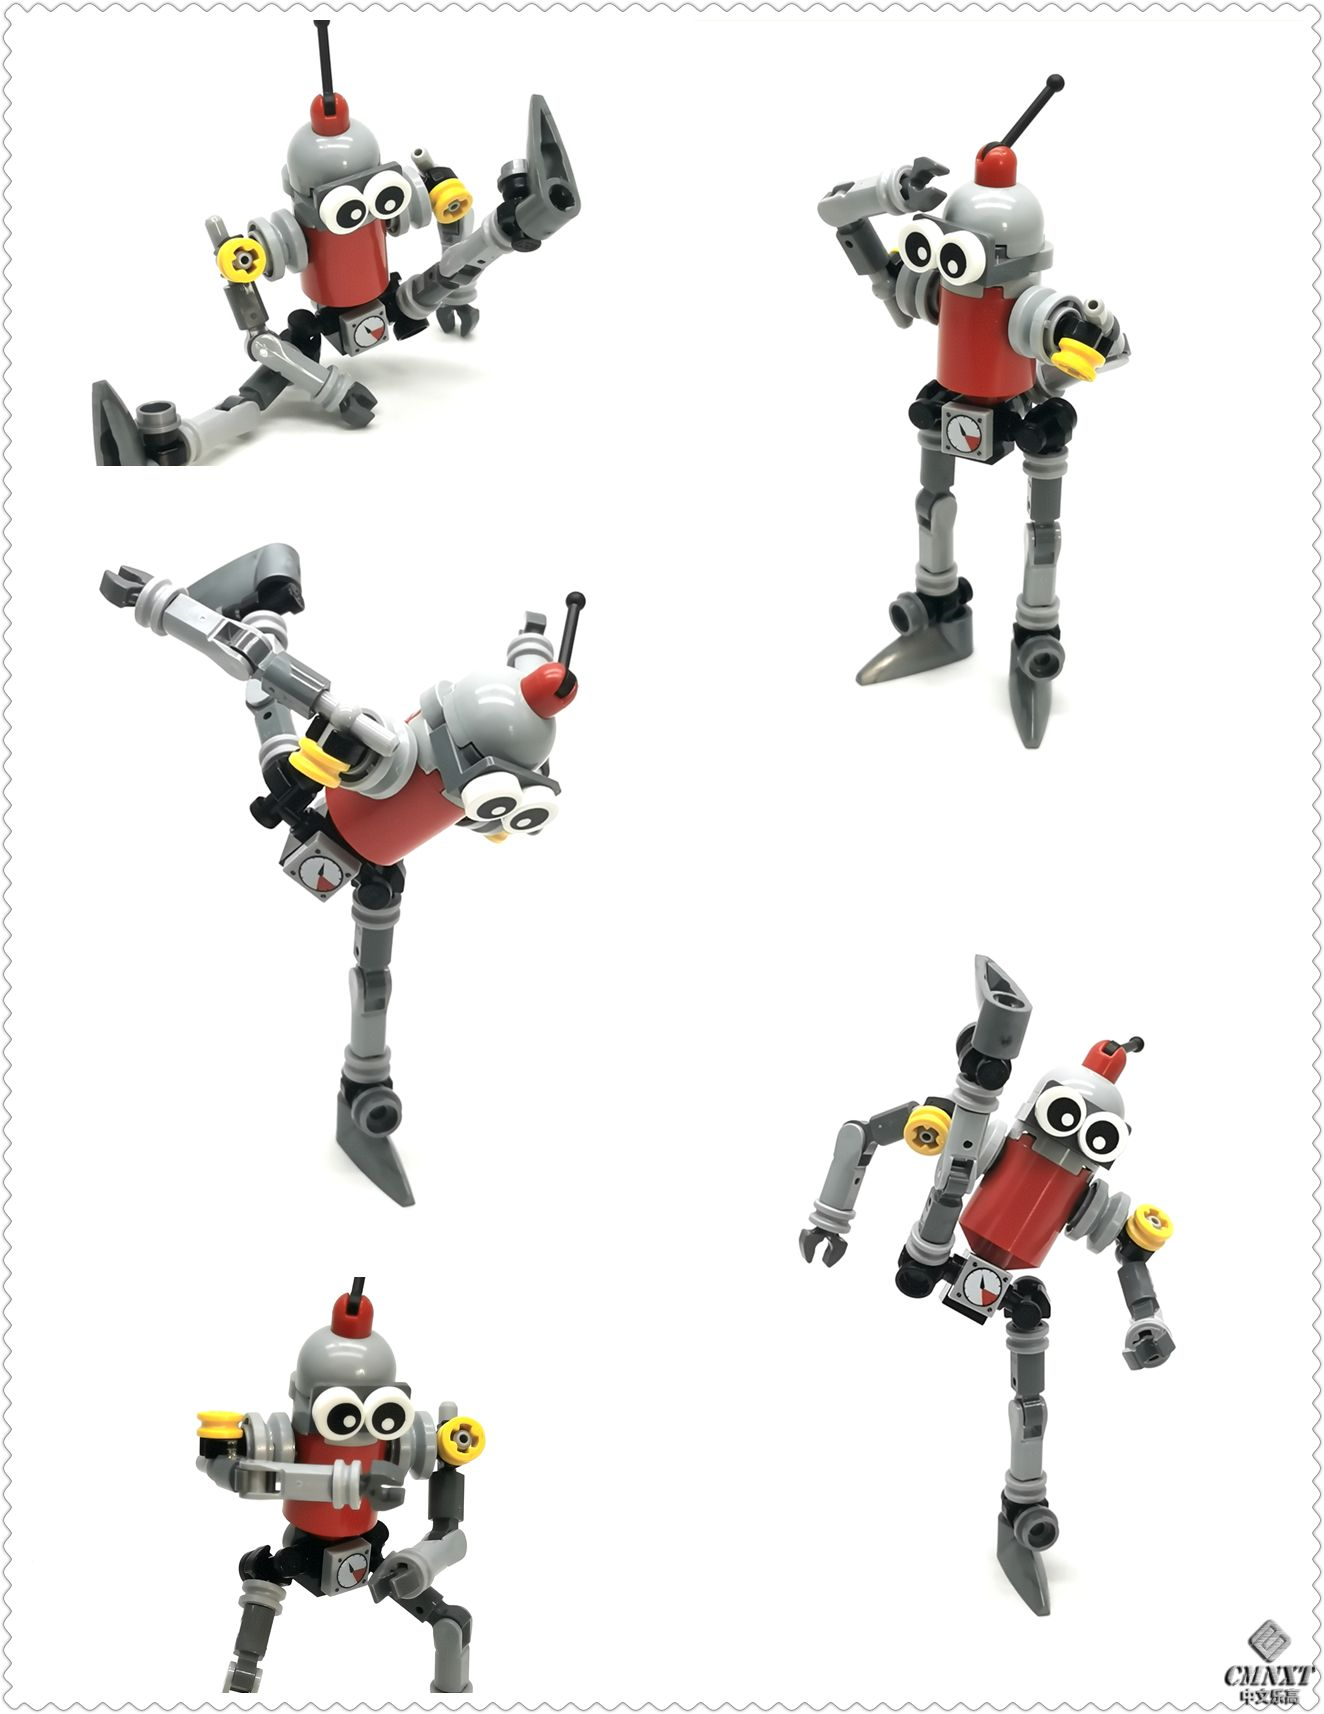 MOC - 钢舞轻盈 Graceful dancing of Steel conso 01.jpg